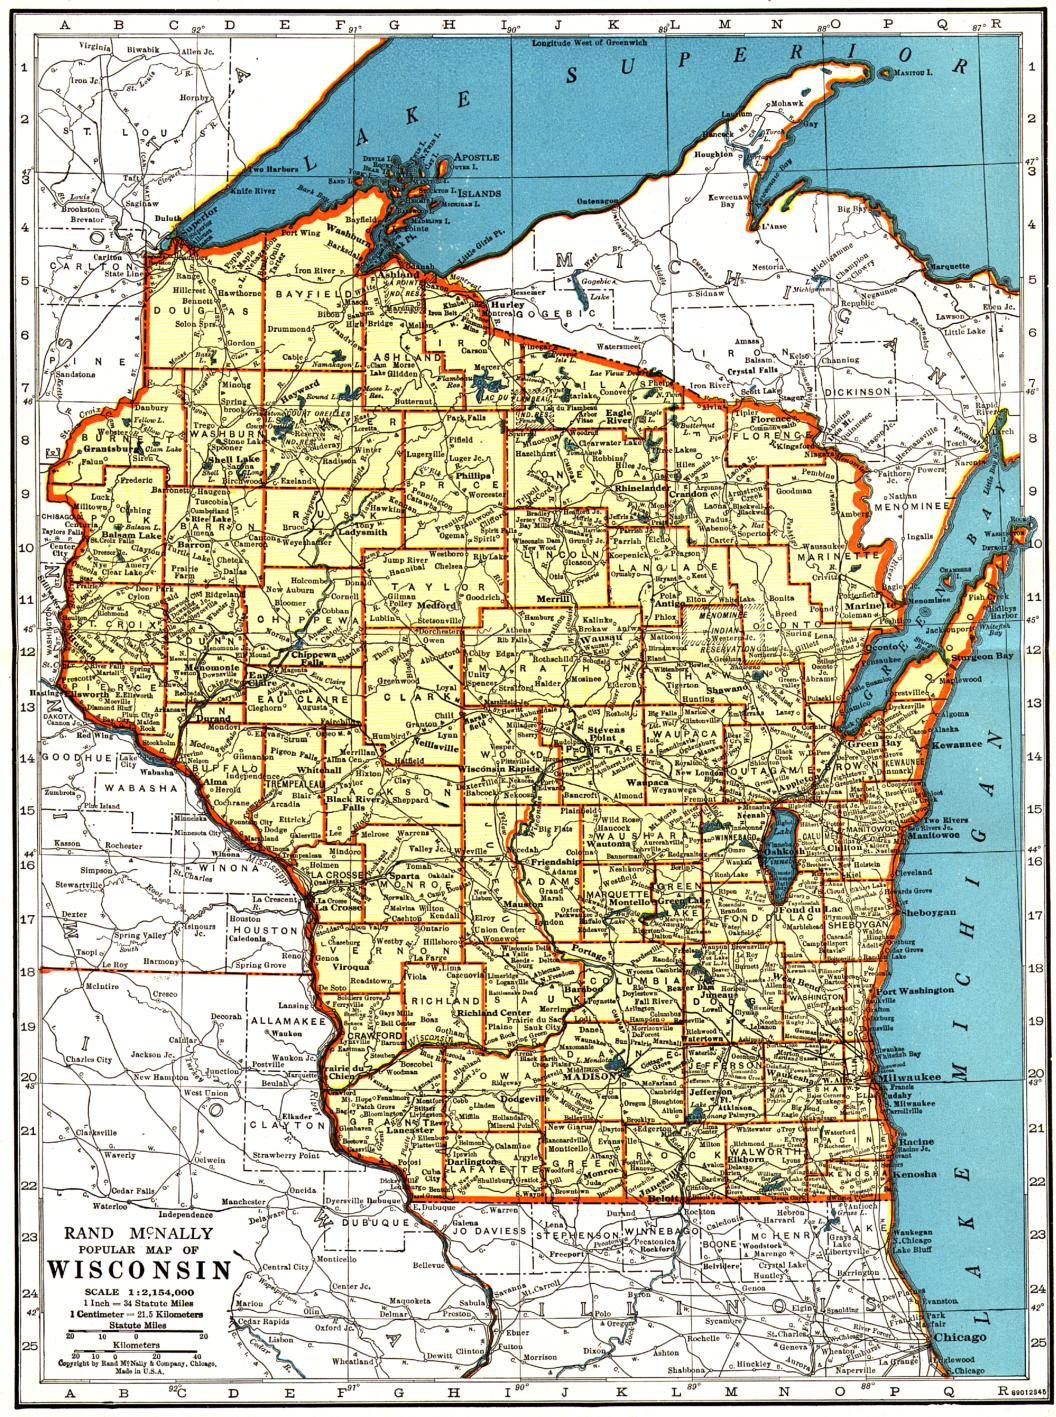 Wisconsin Maps Wisconsin Digital Map Library Table Of Contents - Map of wisconsin and minnesota